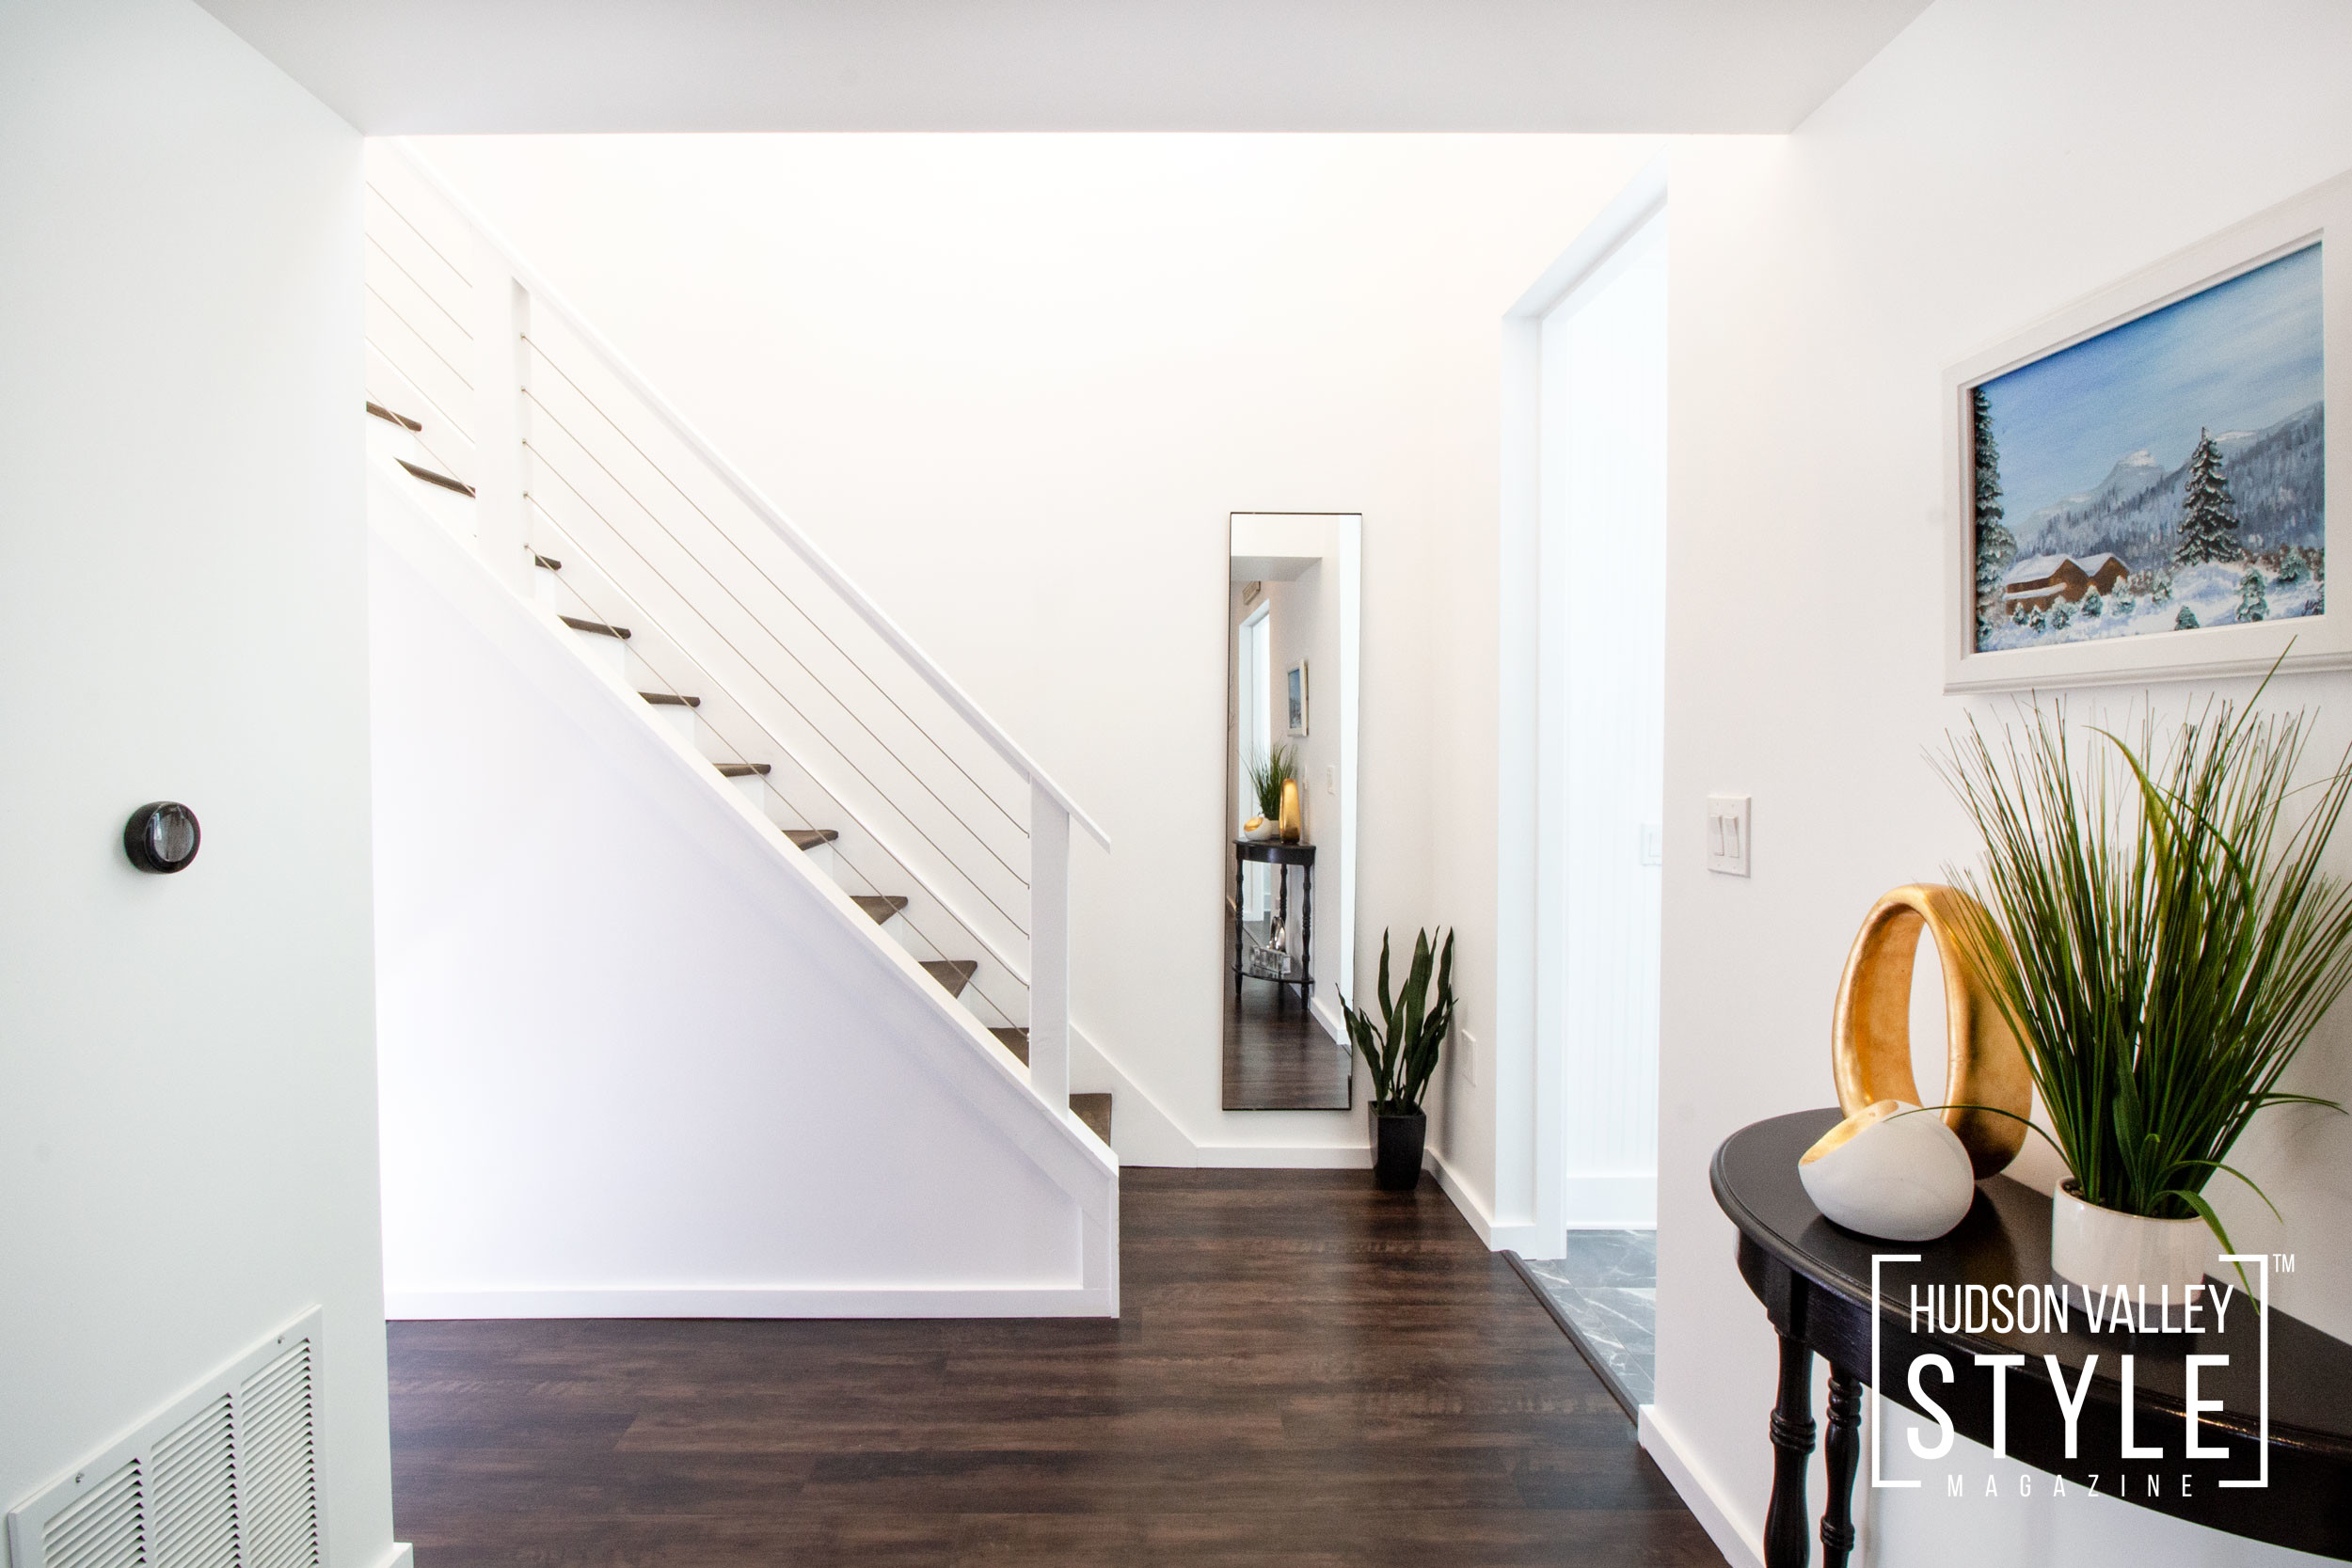 8 Great DIY Tips for Shooting Your Own Real Estate Photos